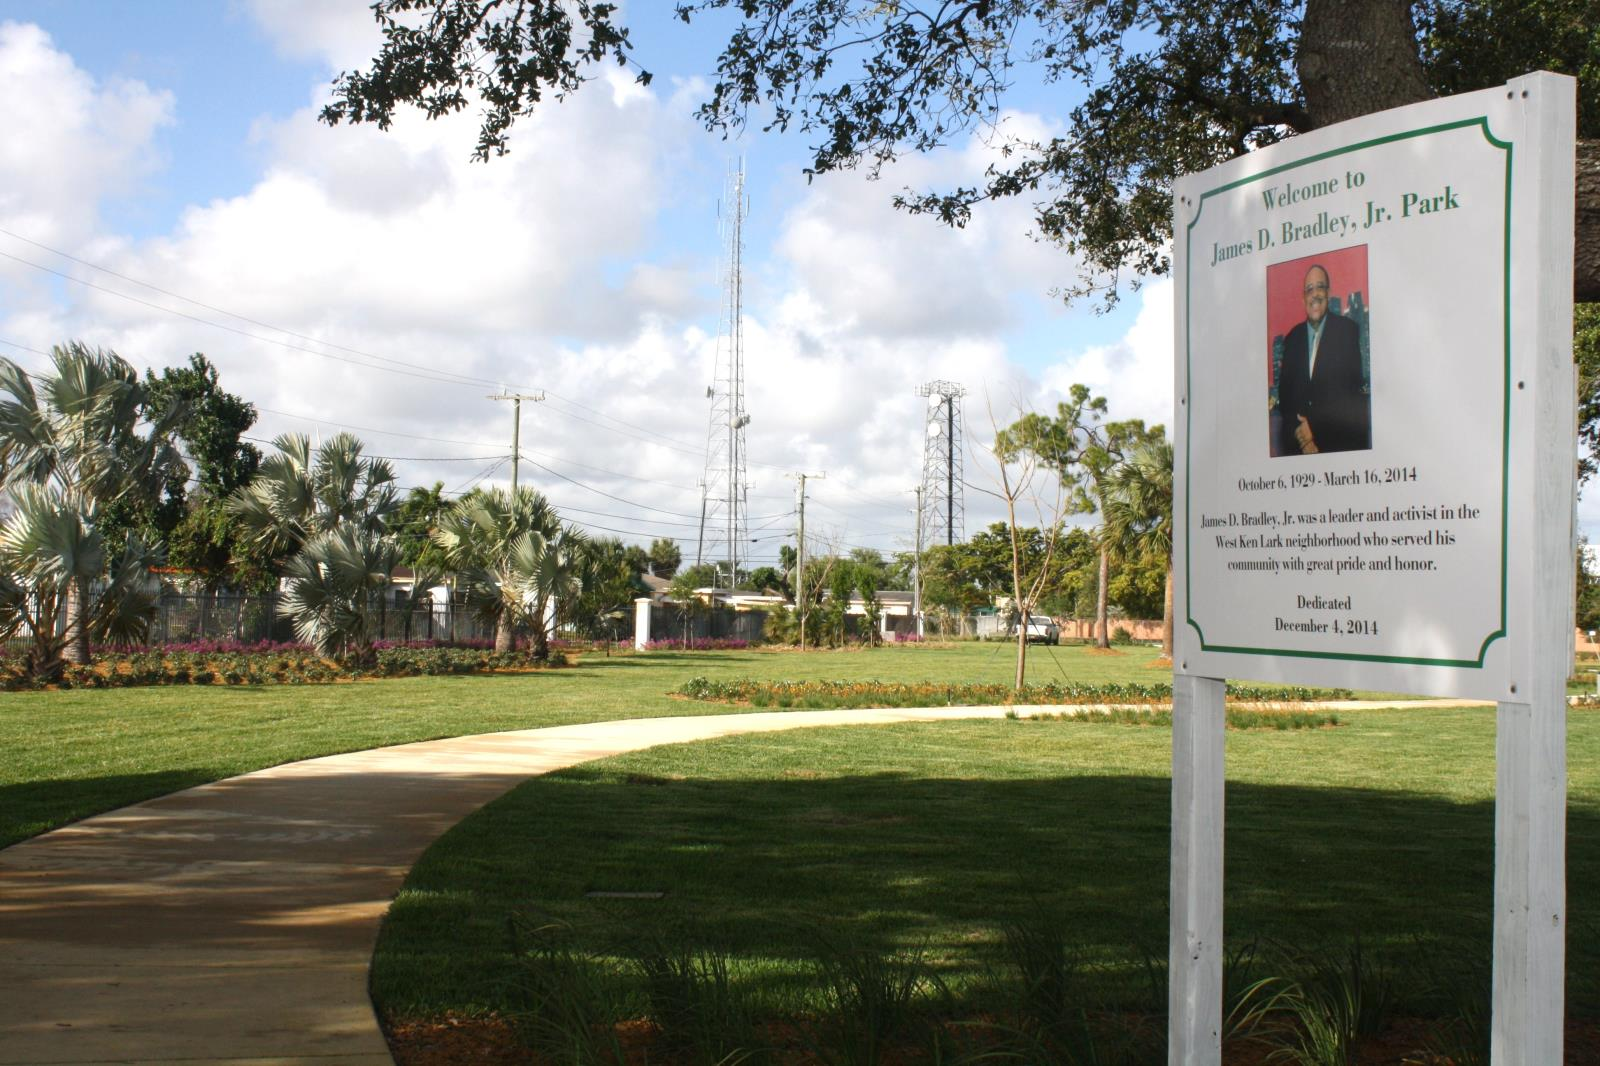 James Bradley Park - Public Art Recognition